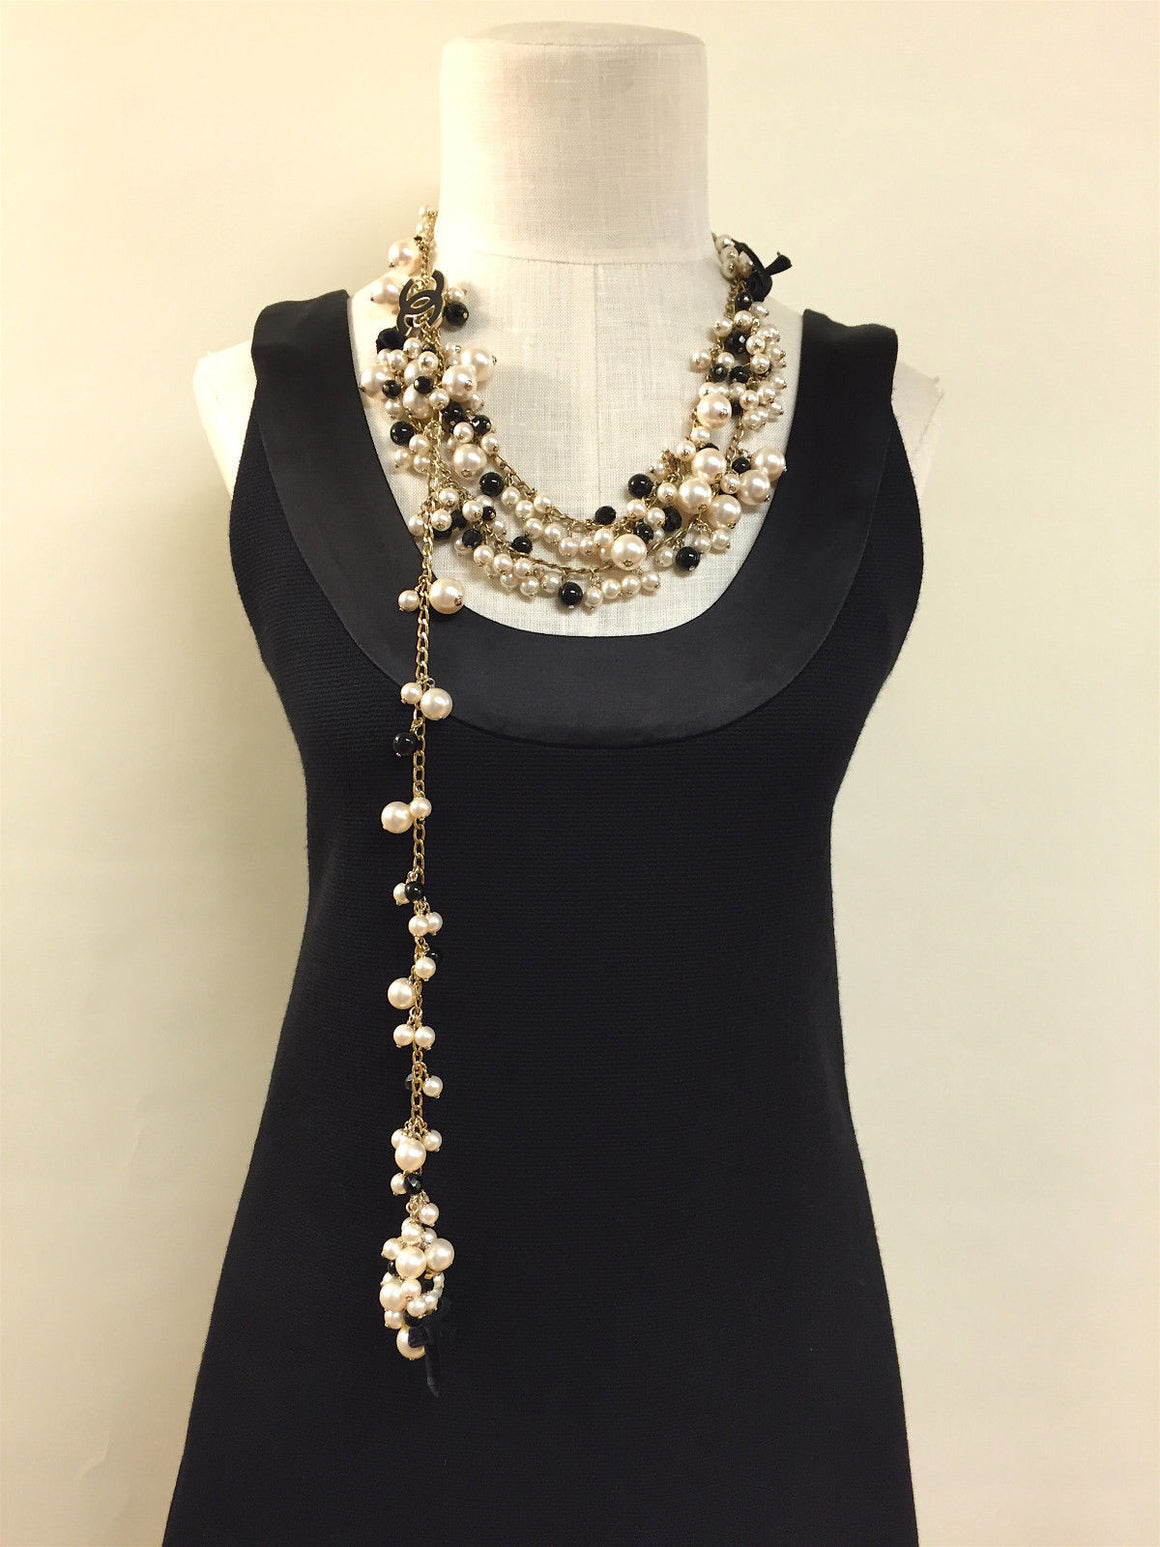 bisbiz.com CHANEL  From the 2007 Cruise Collection Pearls & Jet Black Enameled CC & Velvet Bows Tiered Belt Necklace One Size - Bis Luxury Resale